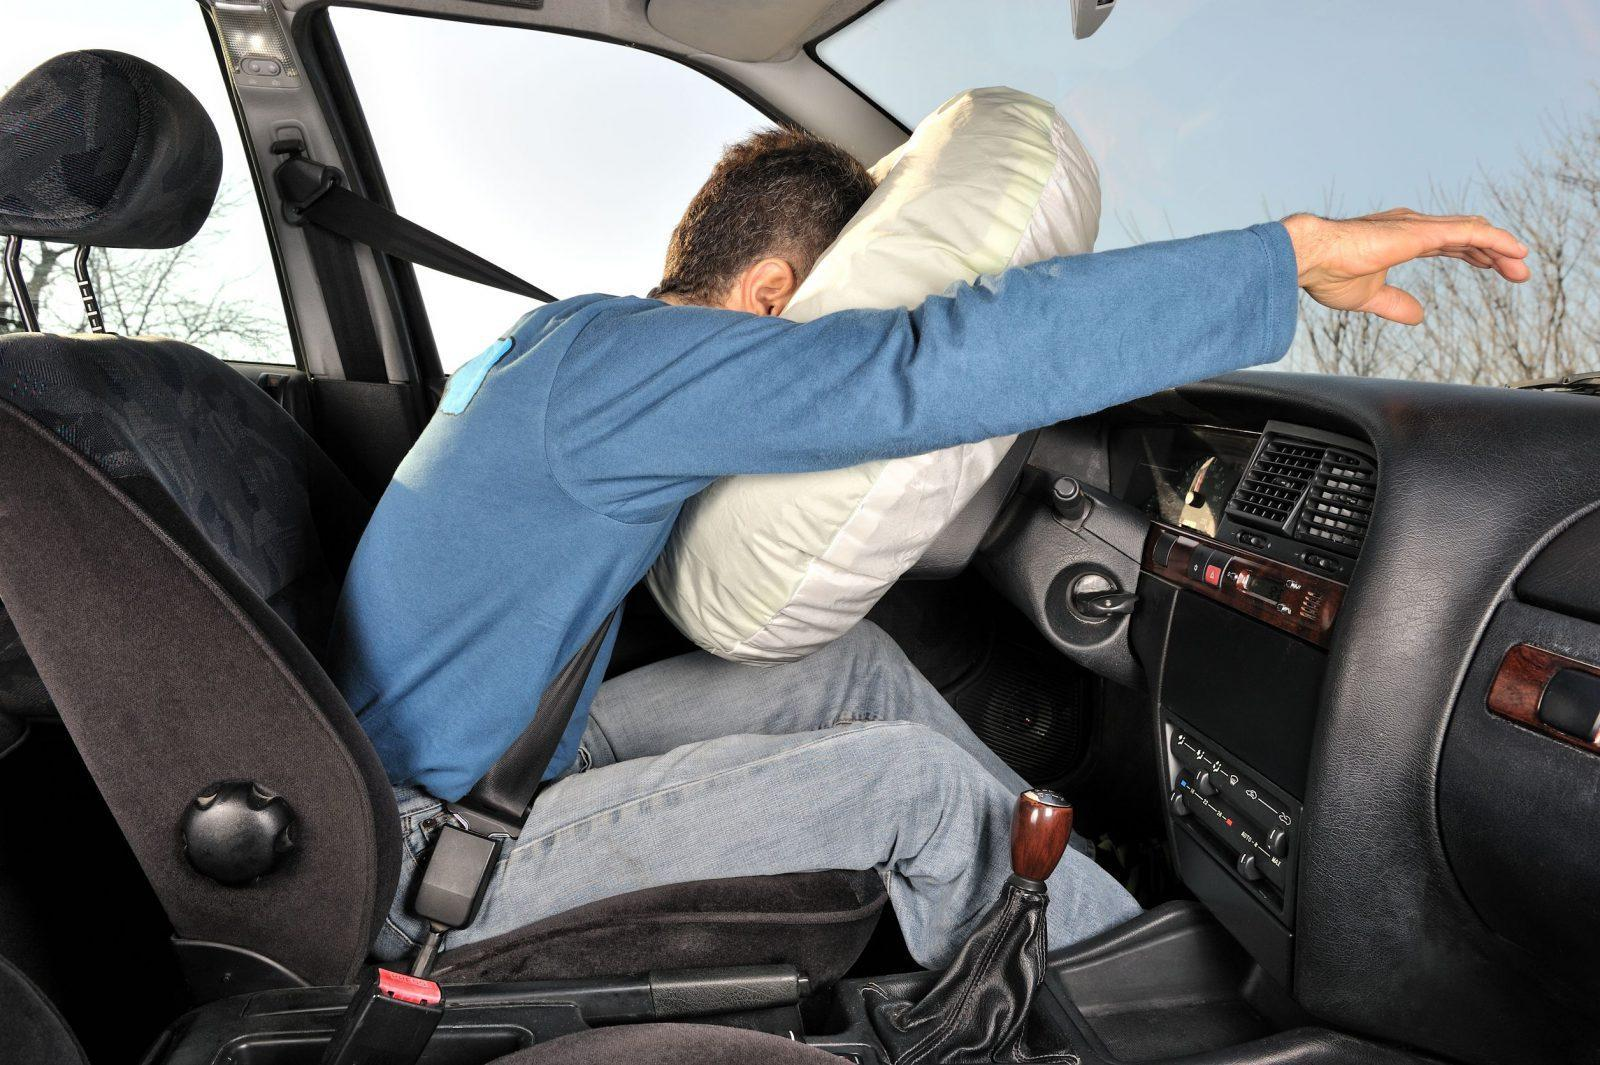 All About Car Airbags And Short People